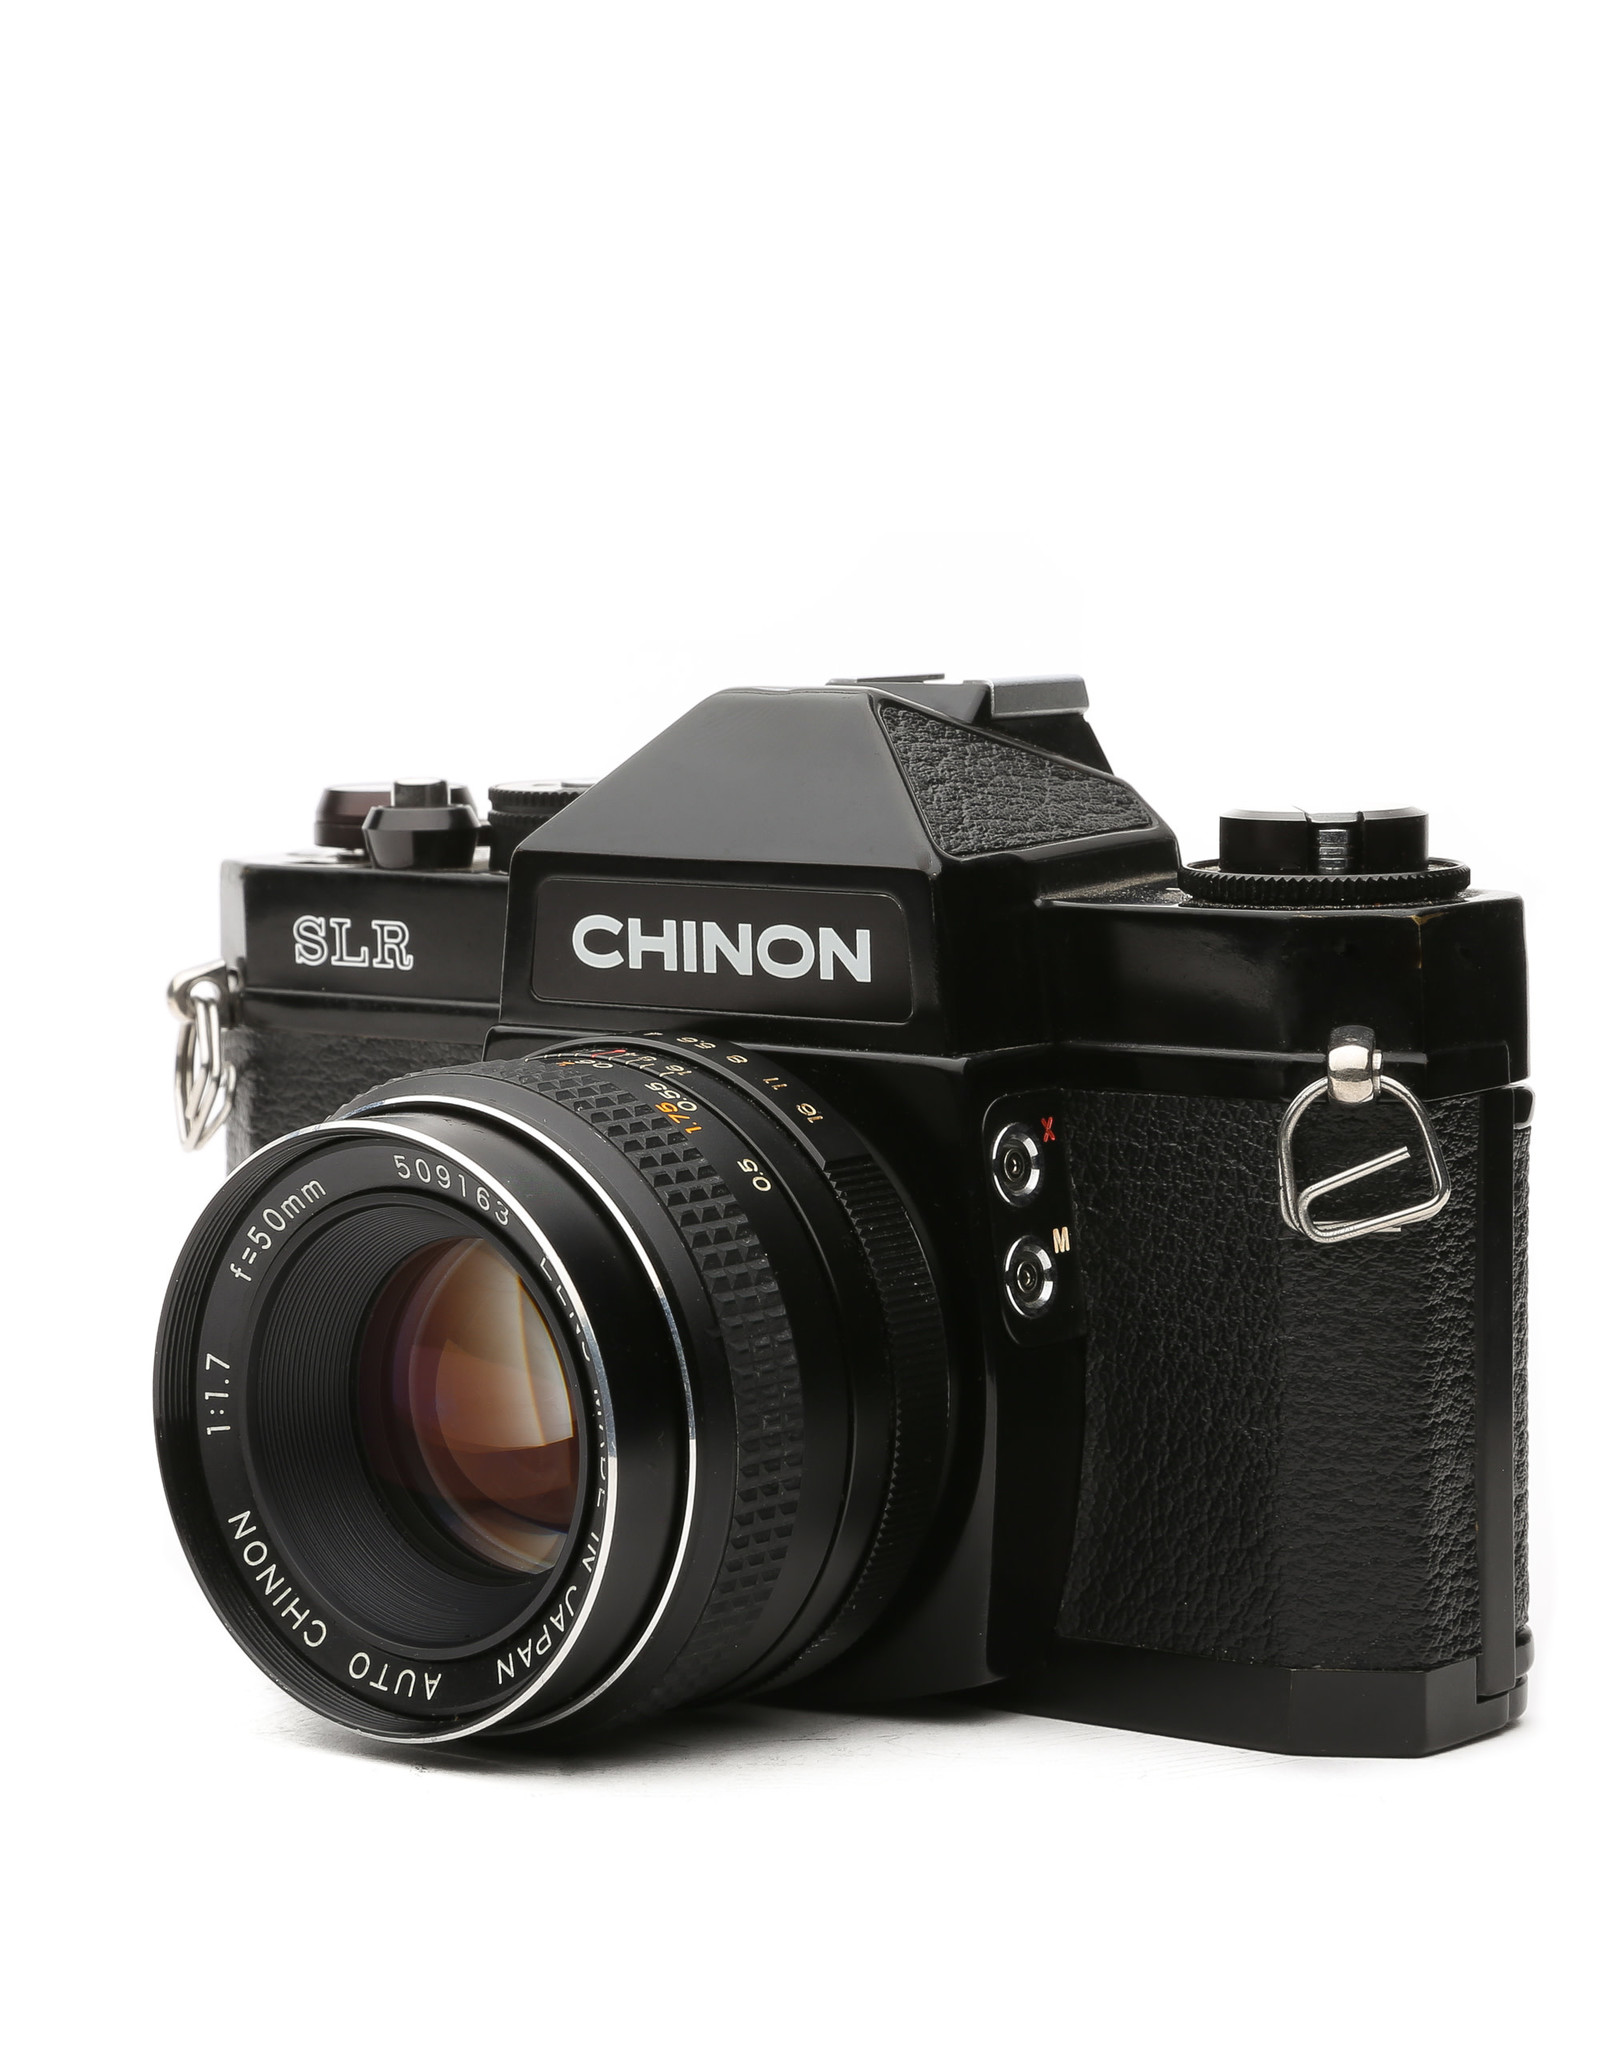 Chinon Chinon 35mm SLR Camera w/50mm f1.7 Lens